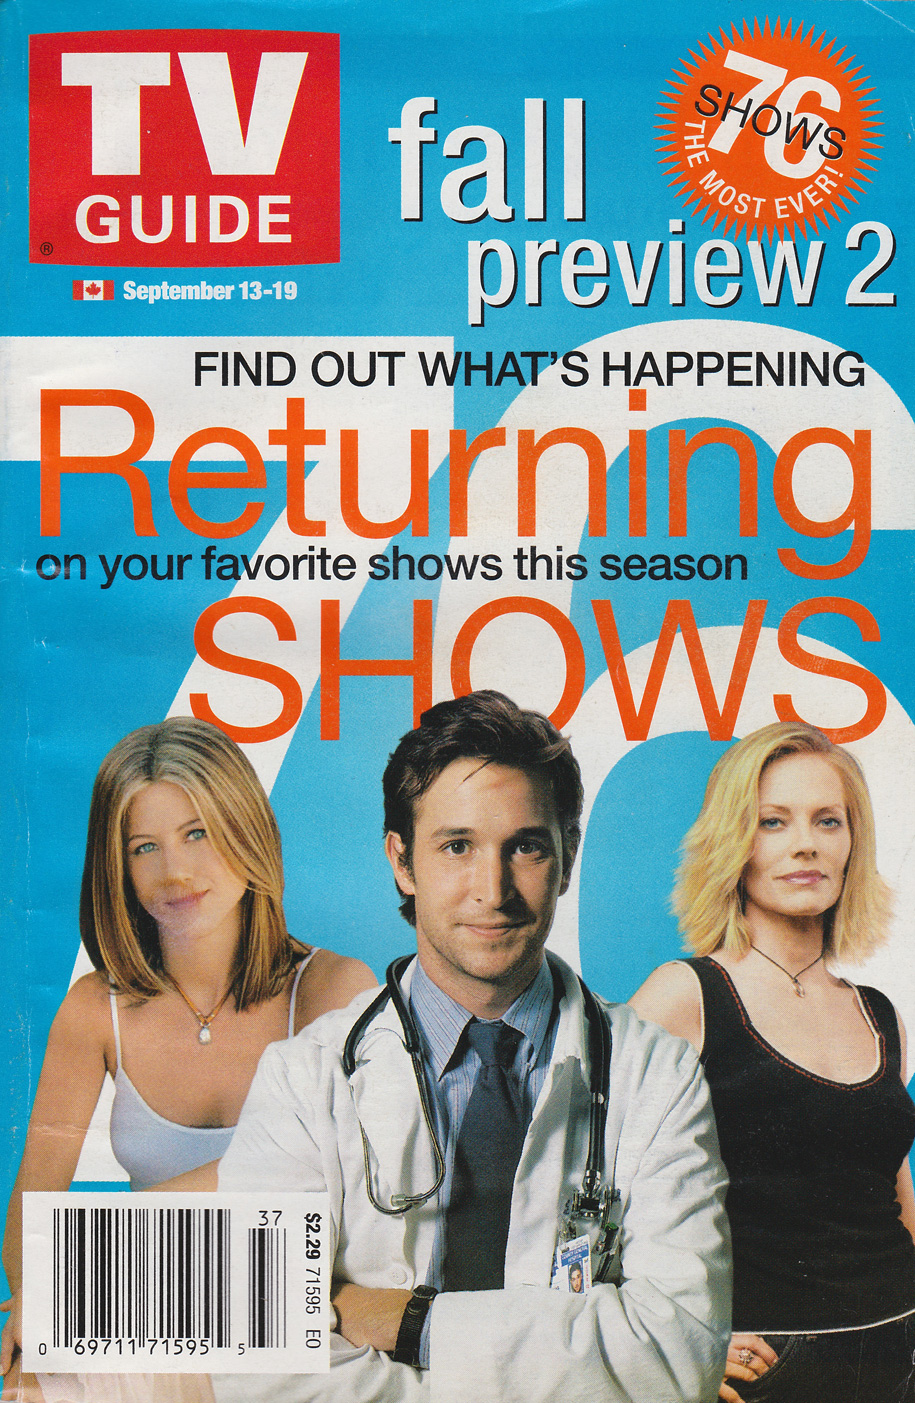 TV Guide September 13 2003 Eastern Ontario Edition Front Cover